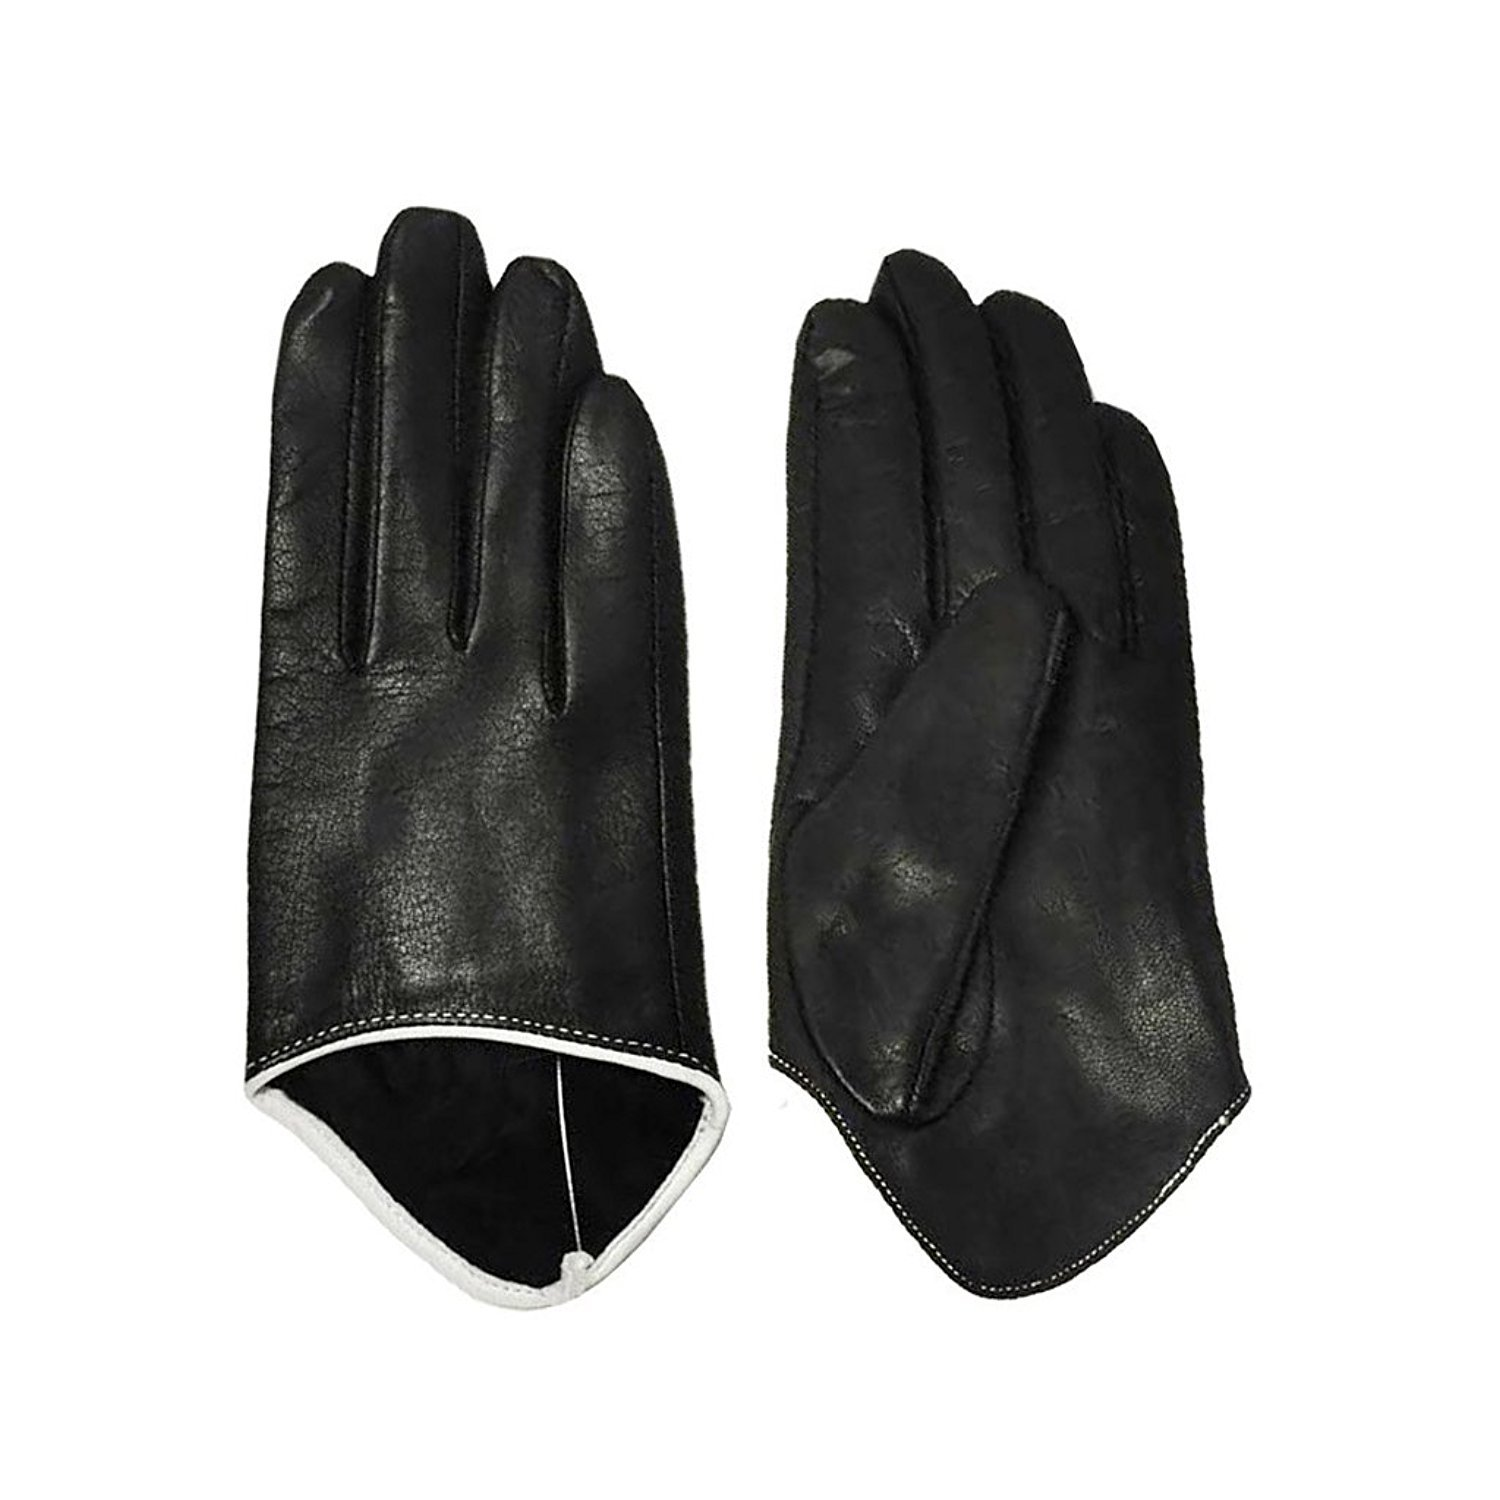 MoDA Ms Rome Womens Genuine Leather Gloves for Driving with Cut-Off Cuffs for Jewelry C0013-BK-M